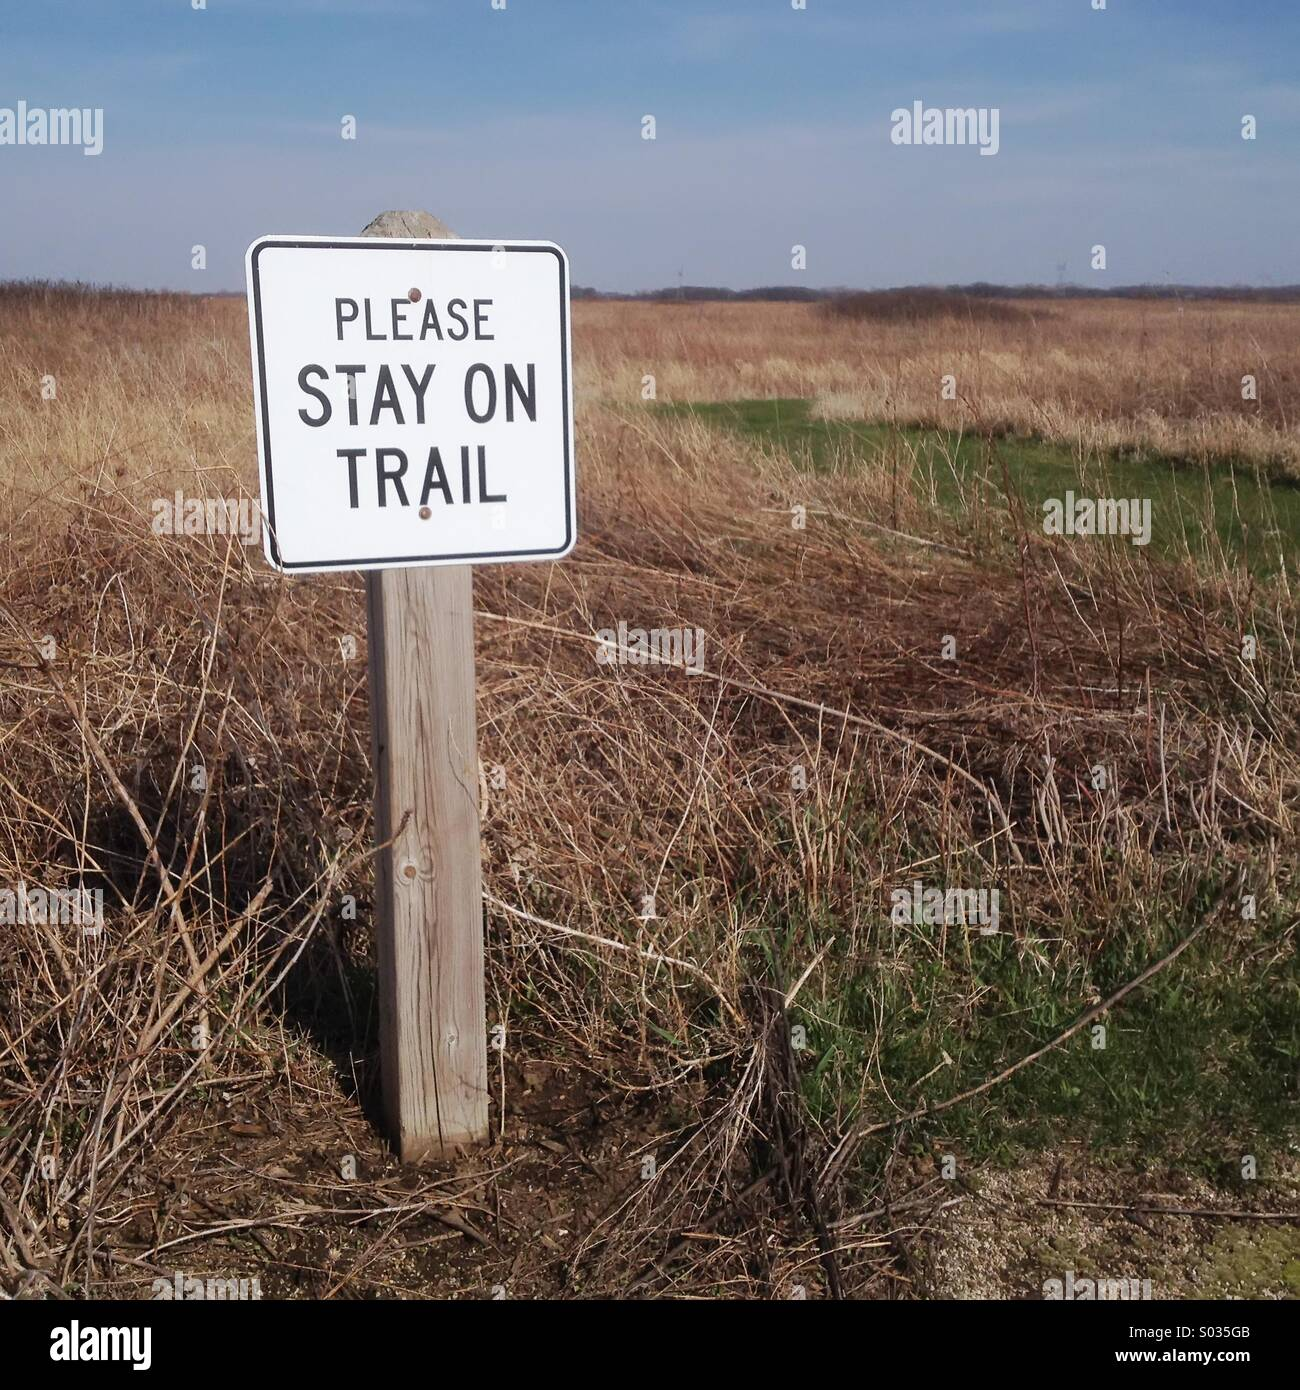 Trail sign on prairie -- for concepts of conformity, normality, cooperation, and routine - Stock Image